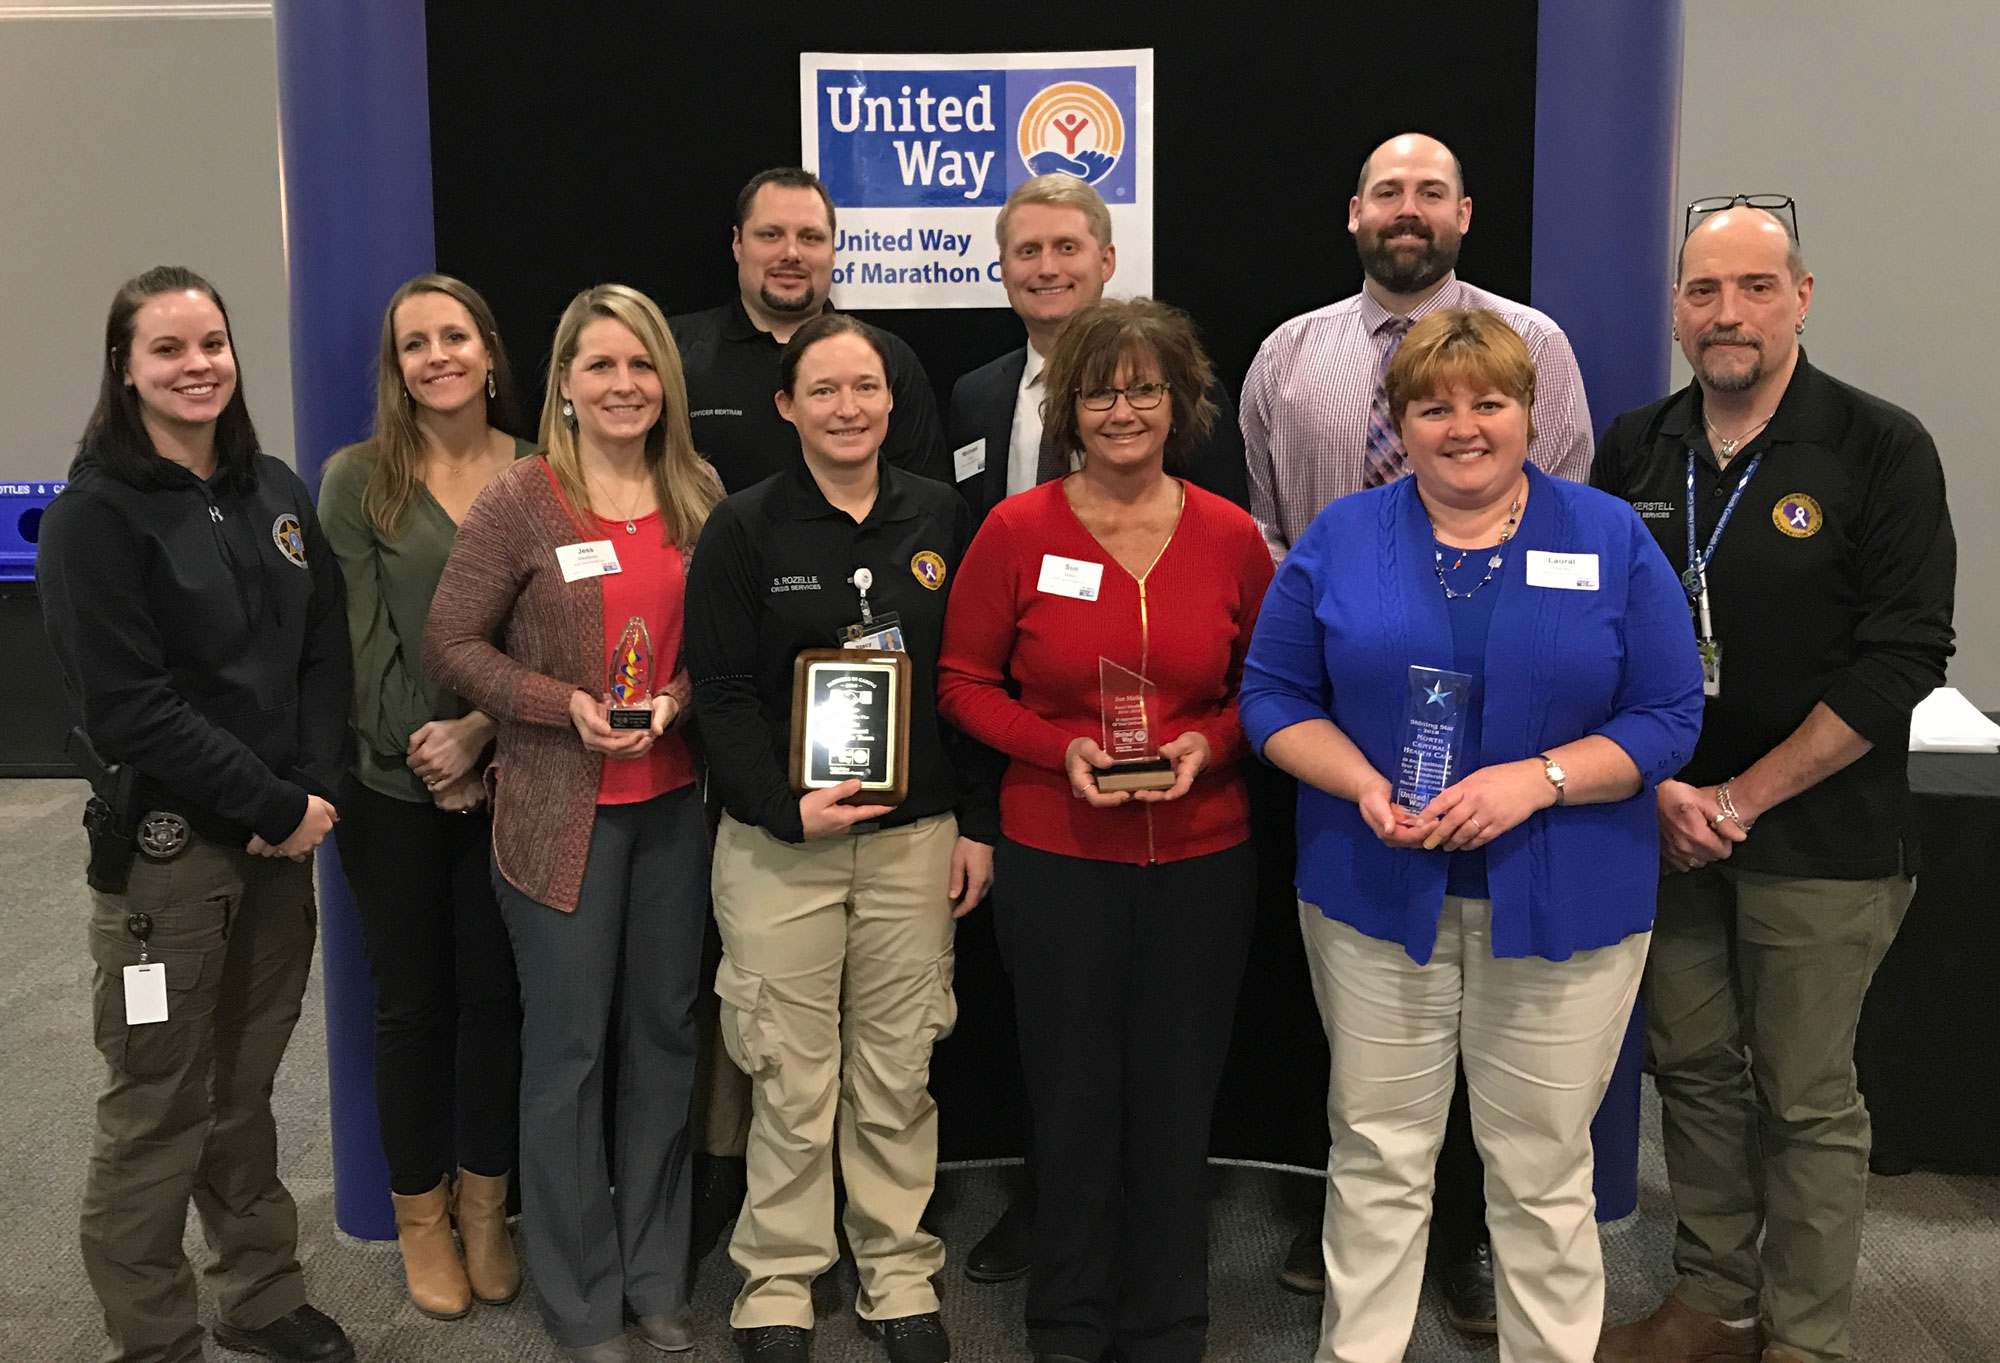 North Central Health Care and Staff Recognized at United Way Annual Luncheon